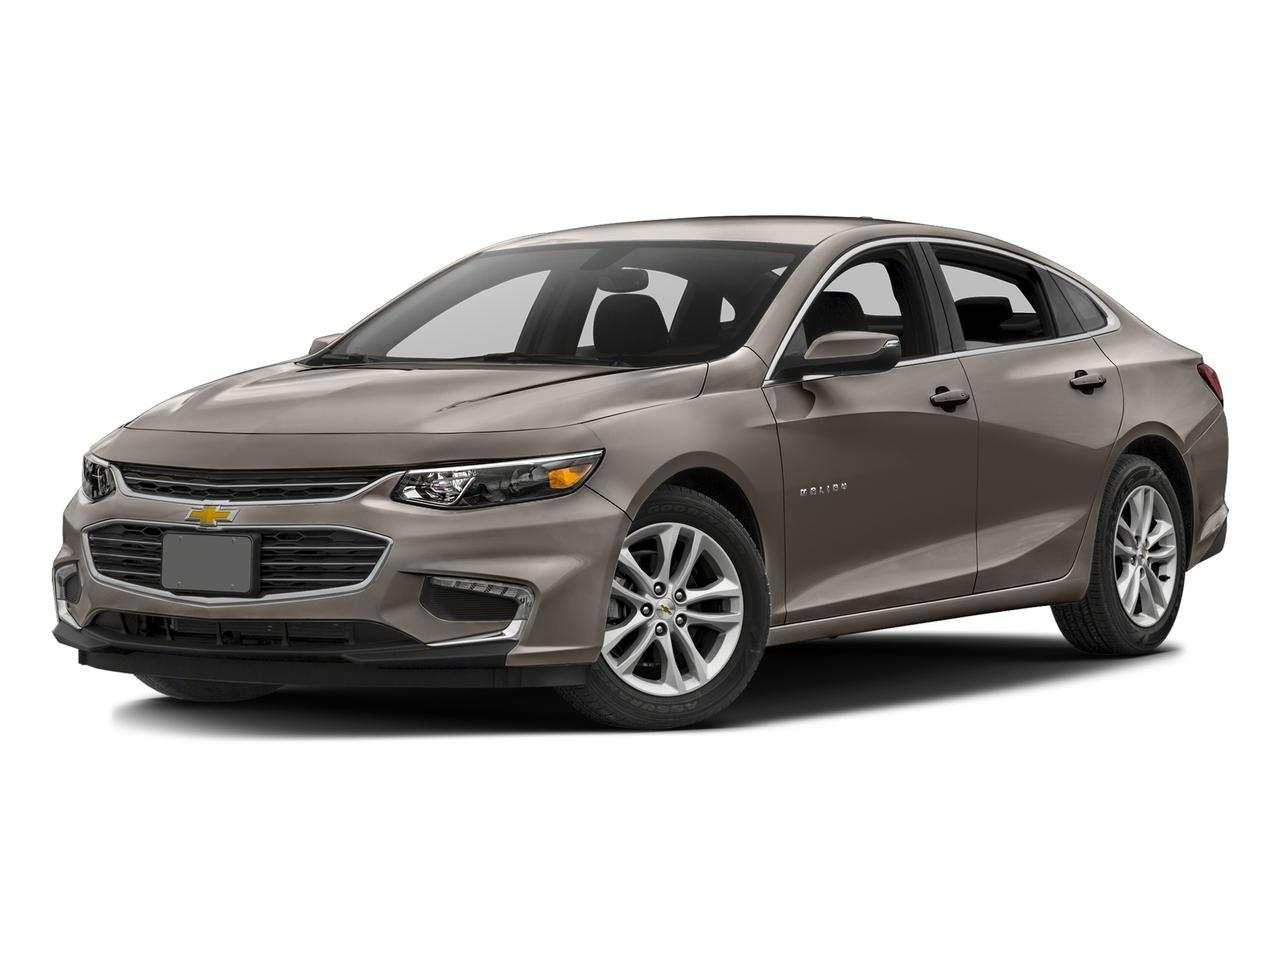 2017 Chevrolet Malibu Vehicle Photo in Owensboro, KY 42303